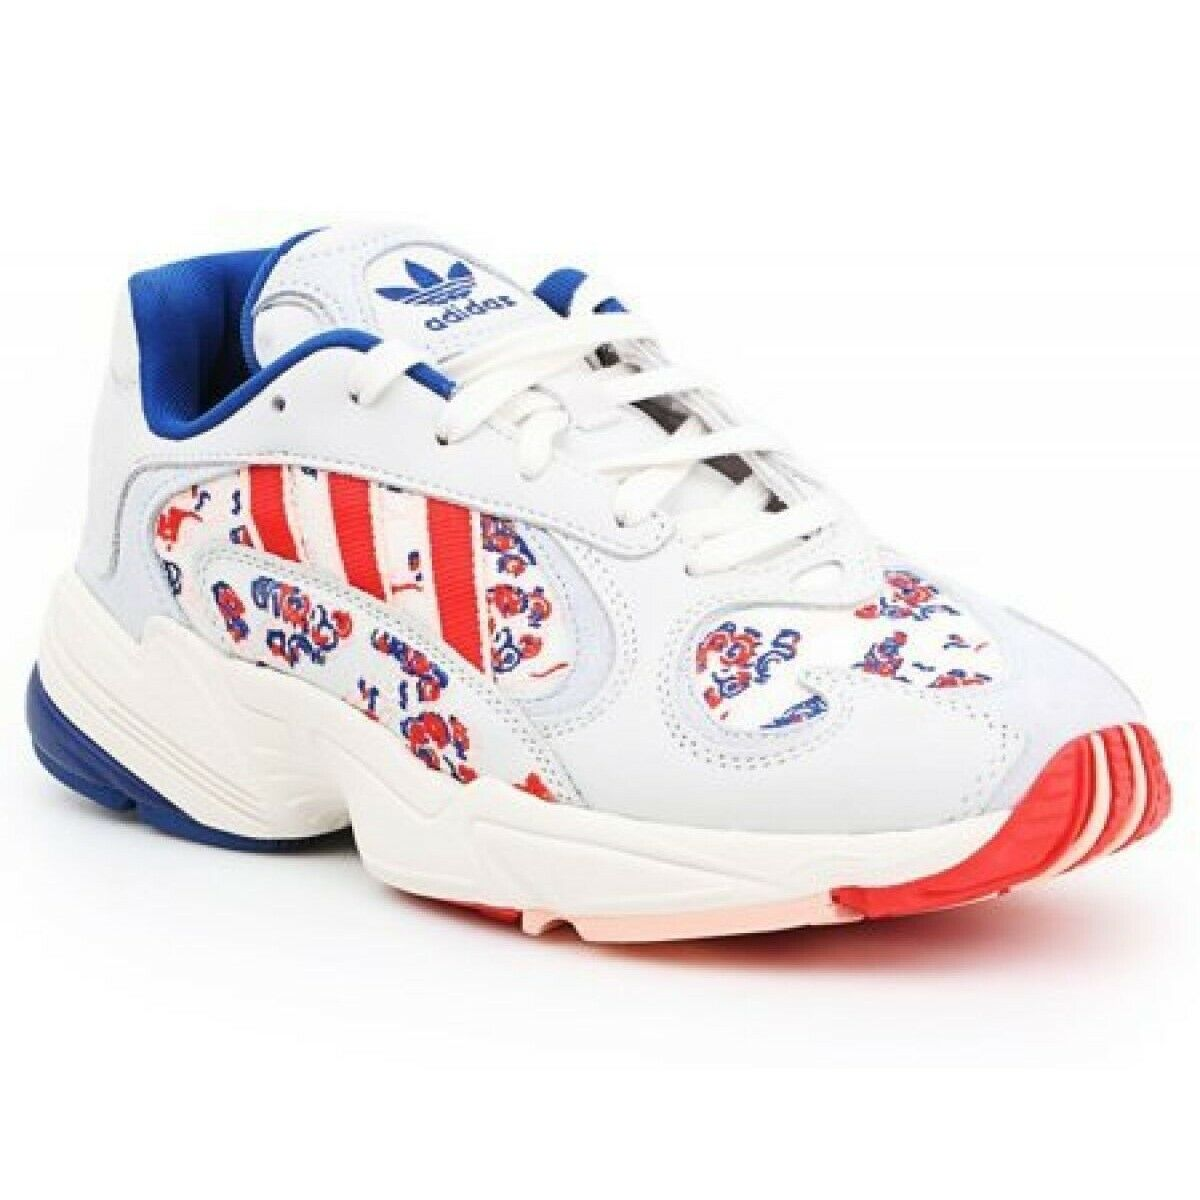 Adidas Yung-1 M EE7087 shoes white